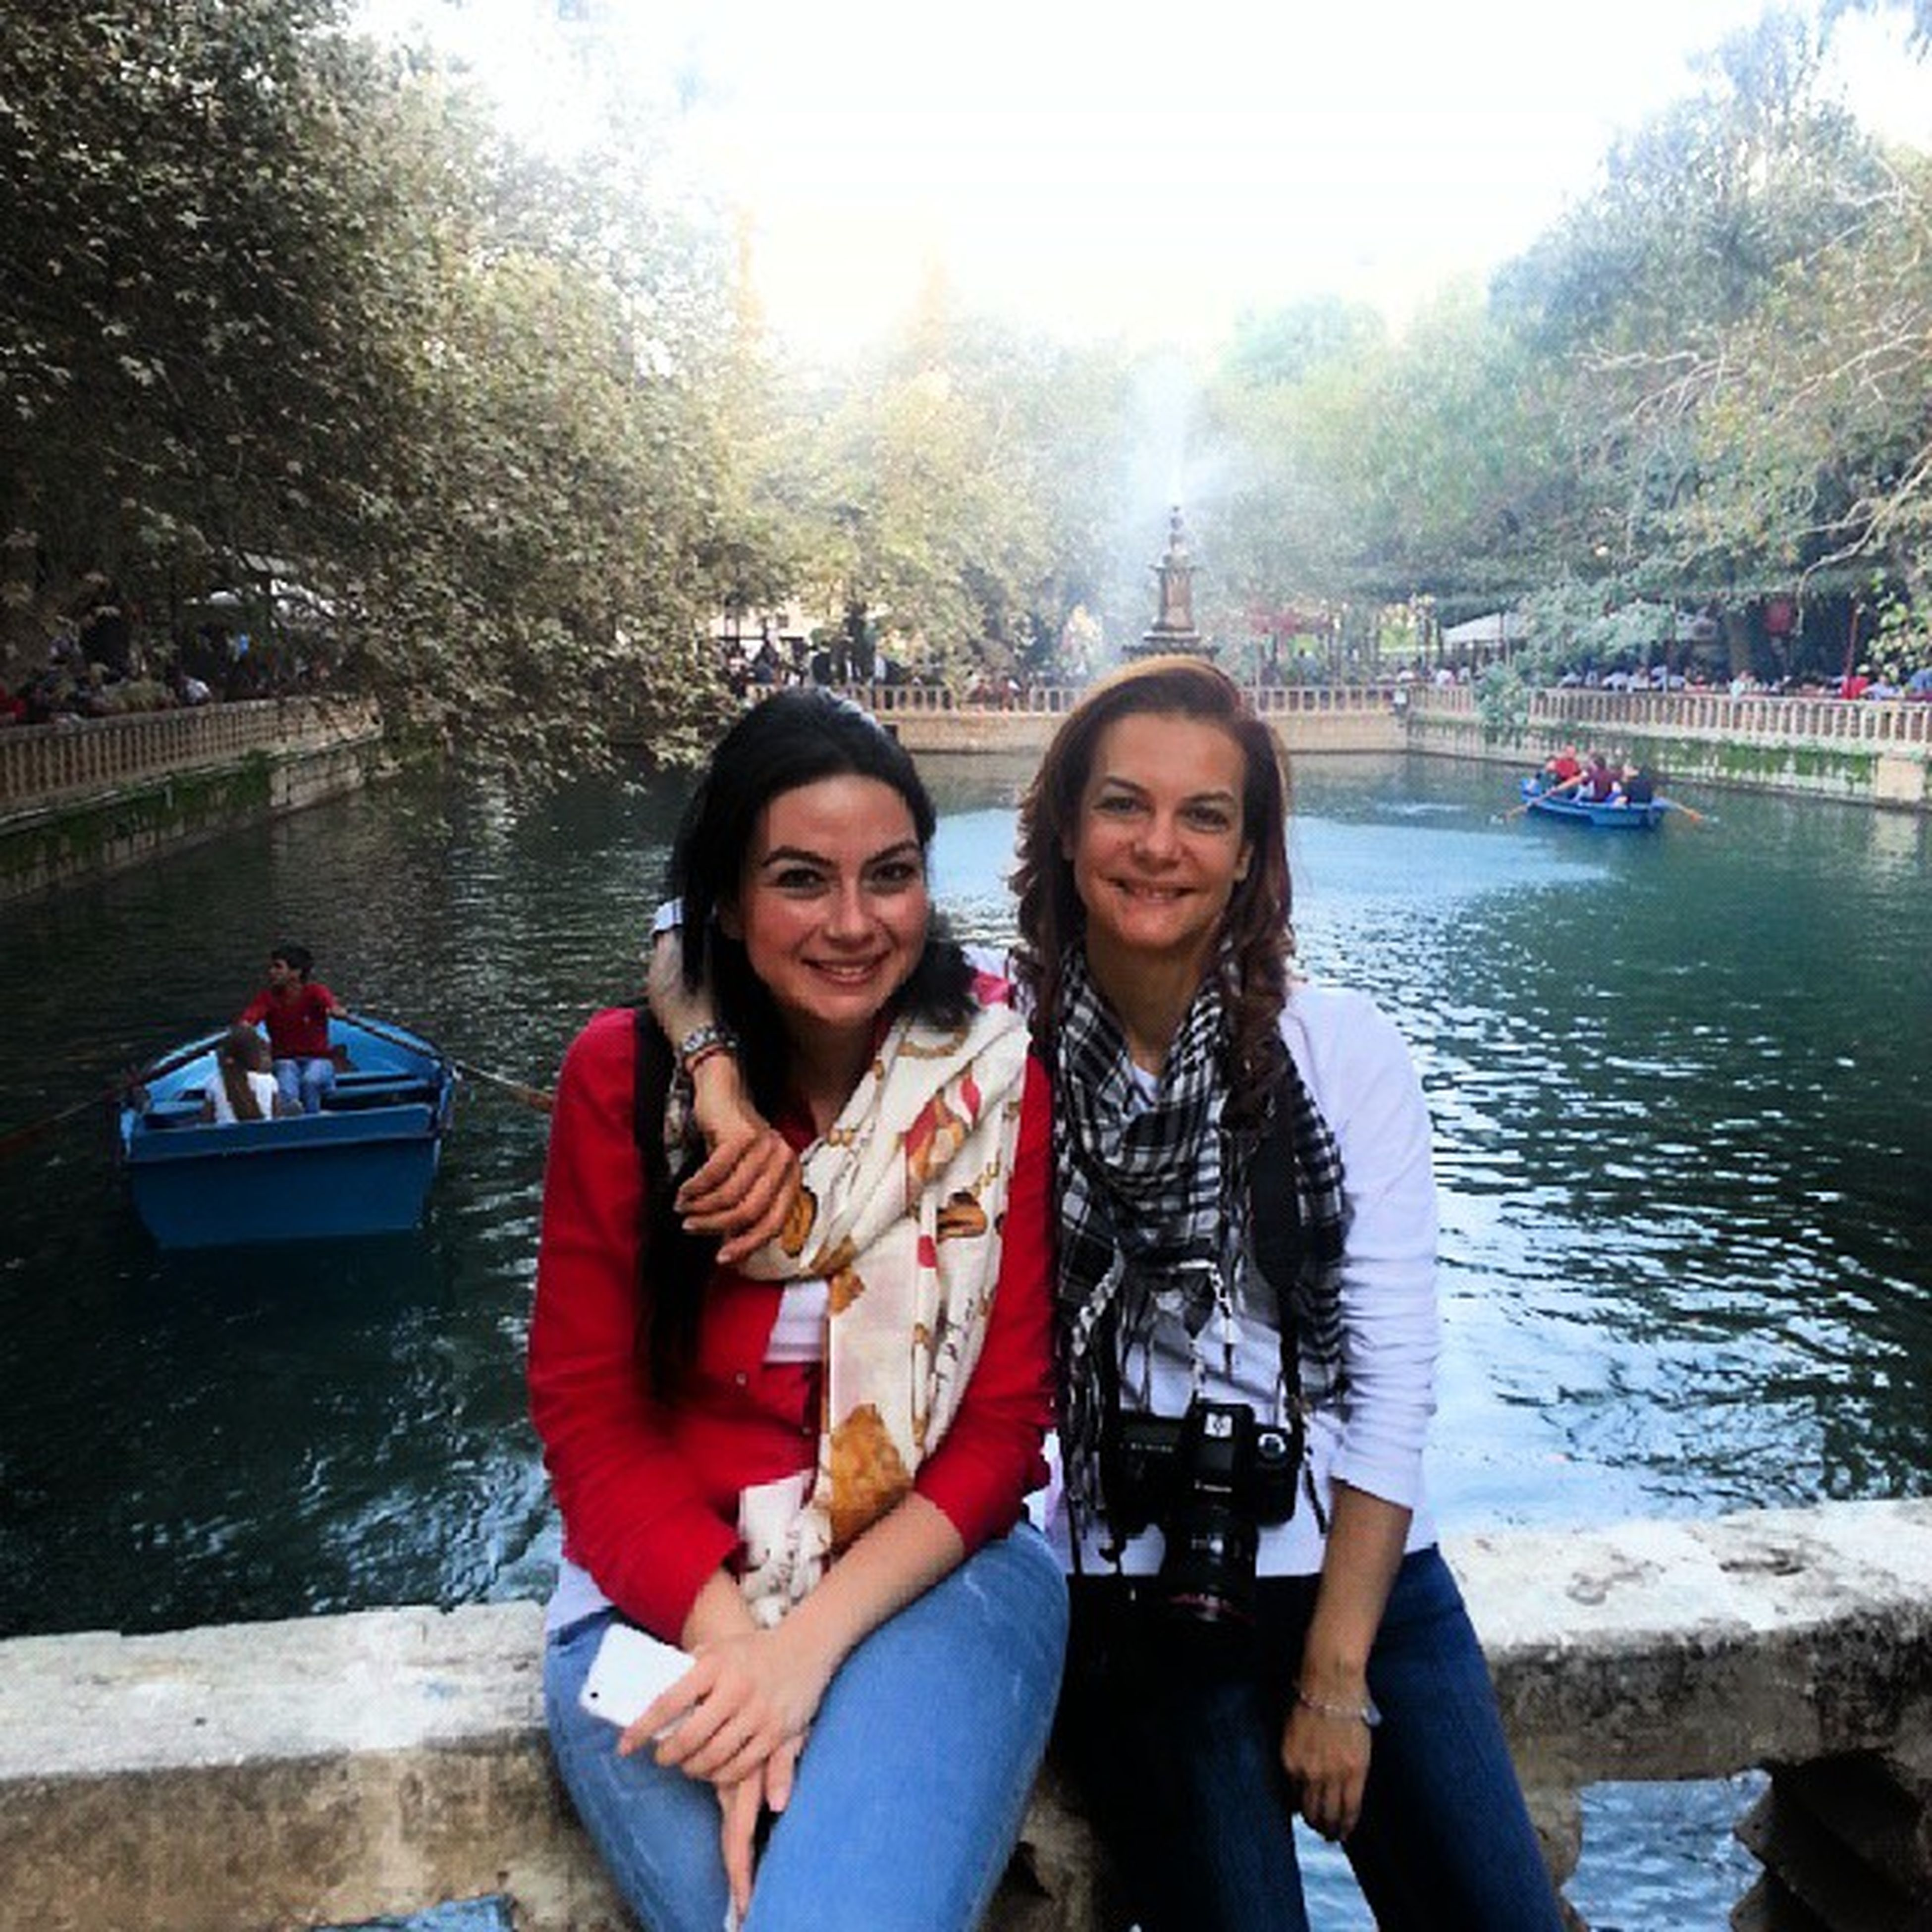 lifestyles, person, looking at camera, portrait, togetherness, leisure activity, smiling, happiness, casual clothing, front view, young adult, bonding, water, young women, love, toothy smile, enjoyment, sitting